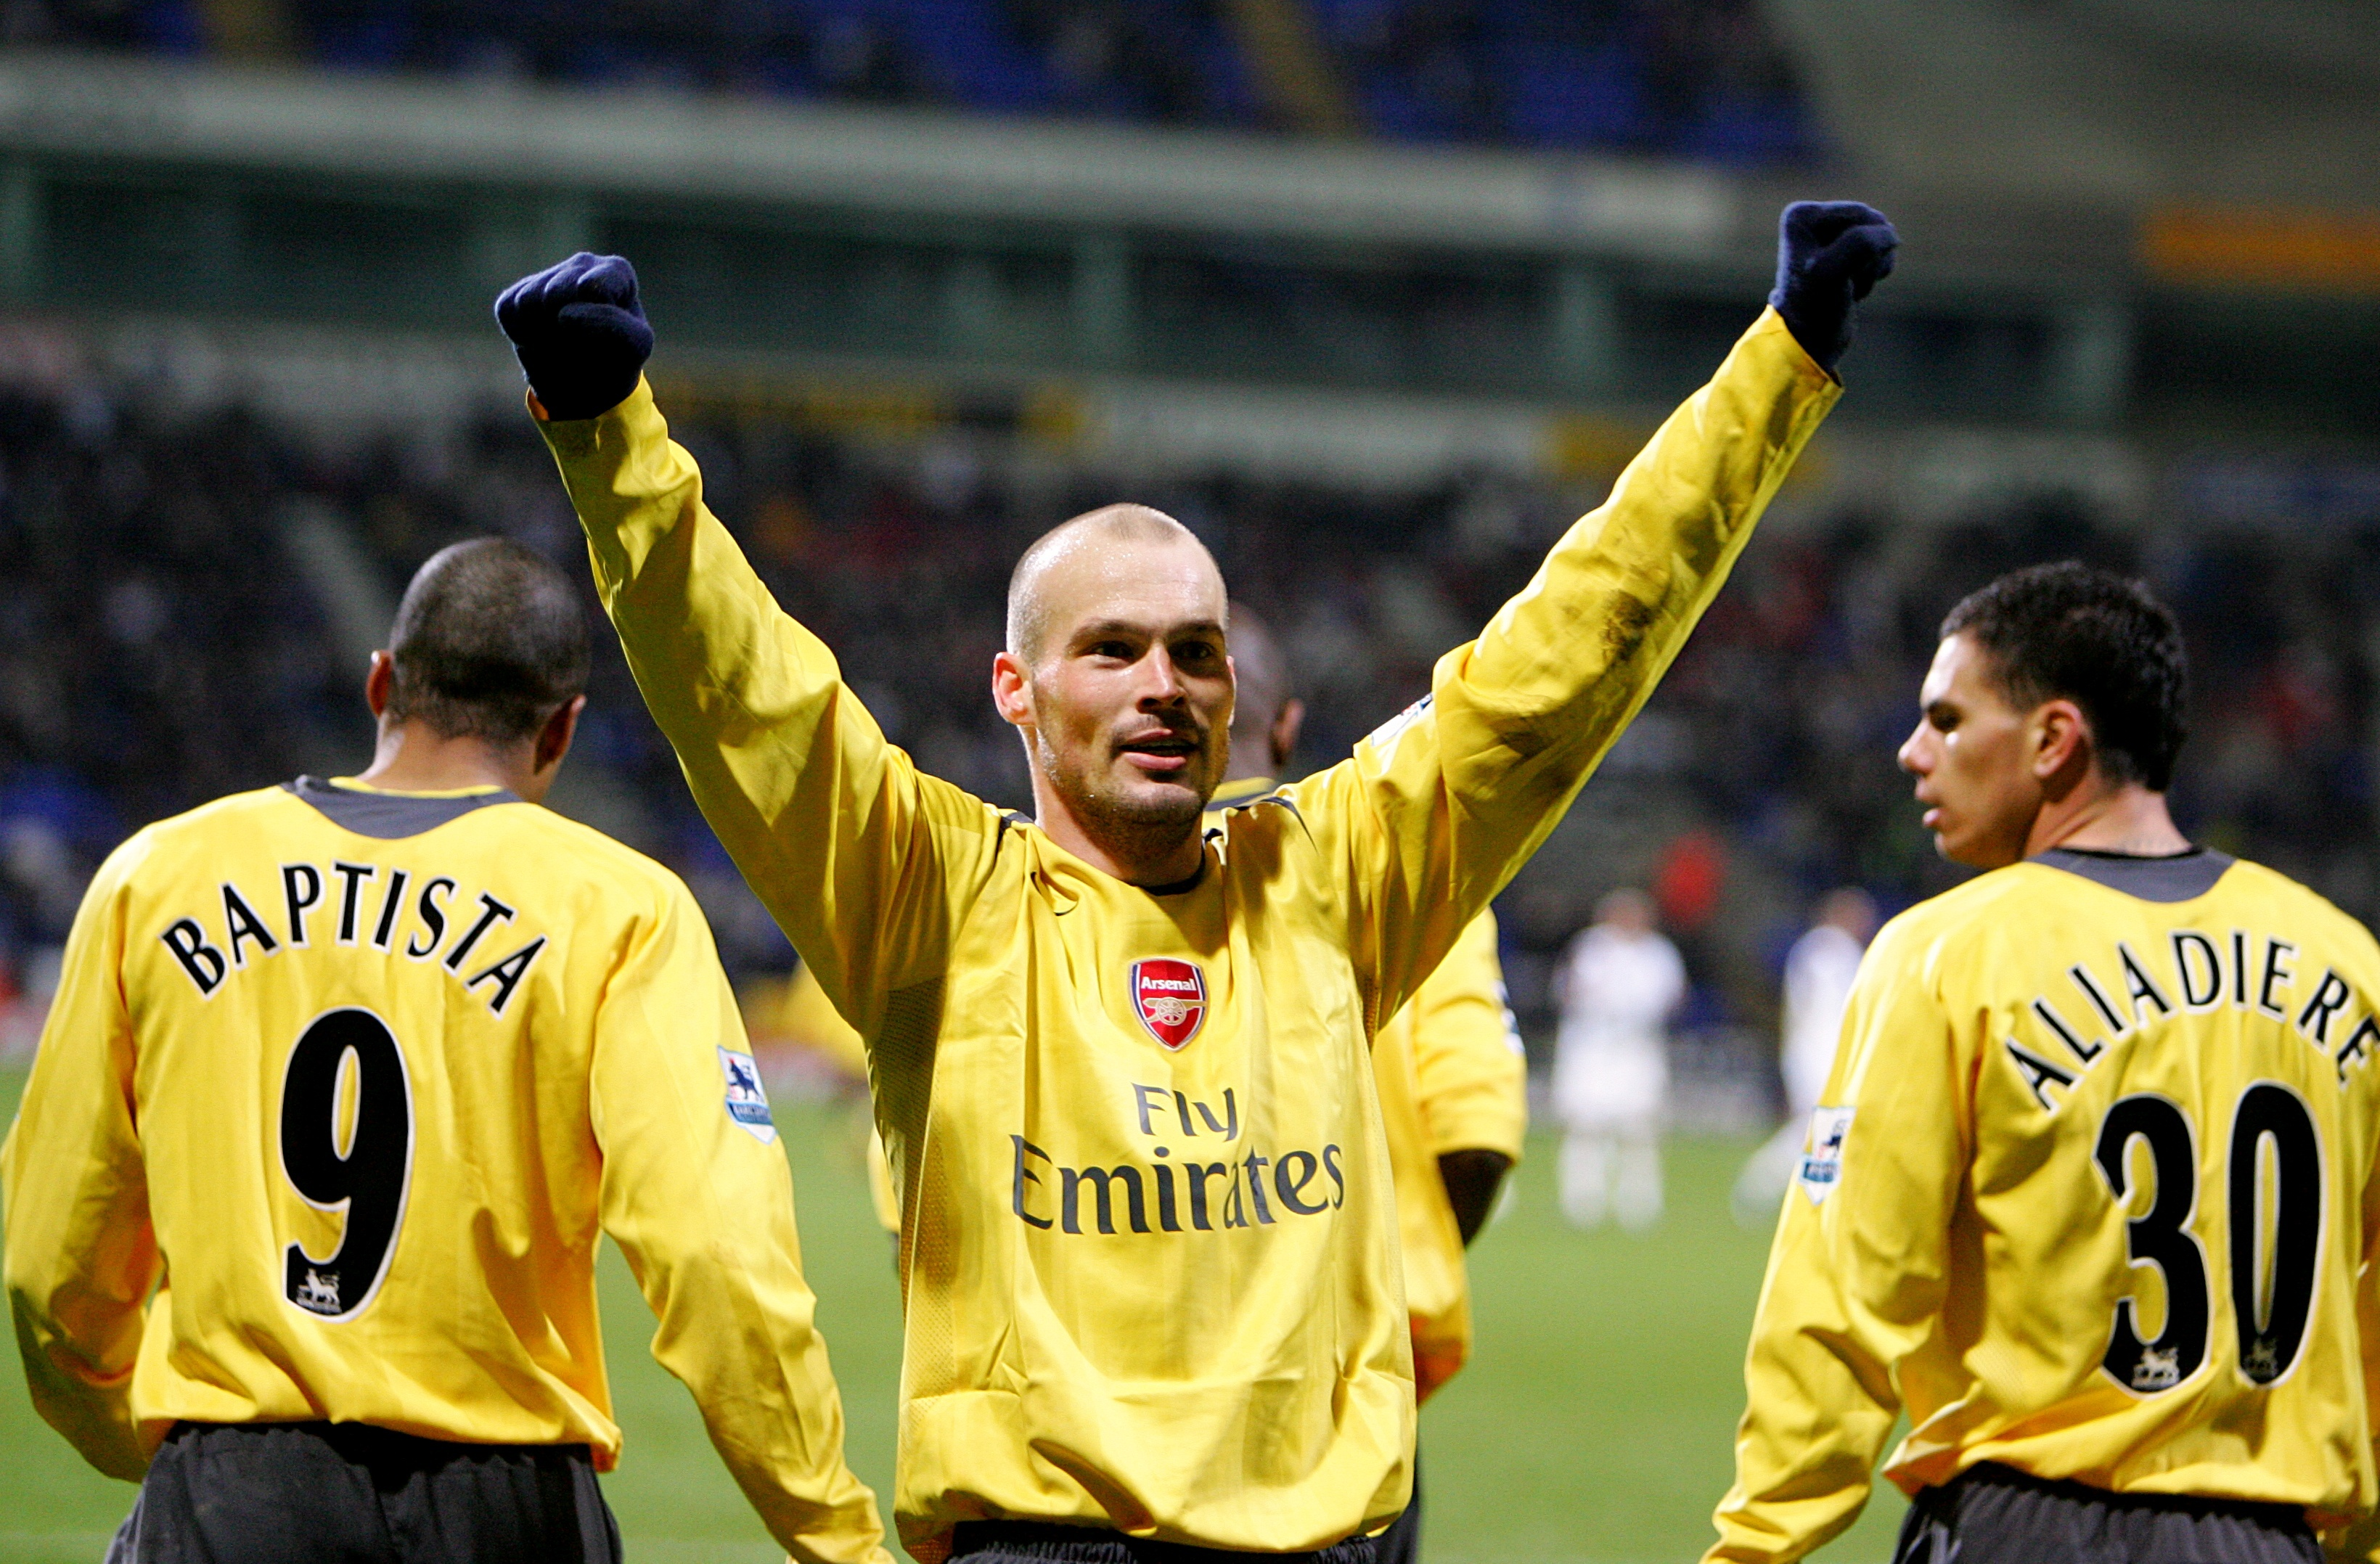 Former Gunners midfielder Freddie Ljungberg was promoted to Unai Emery's assistant over the summer